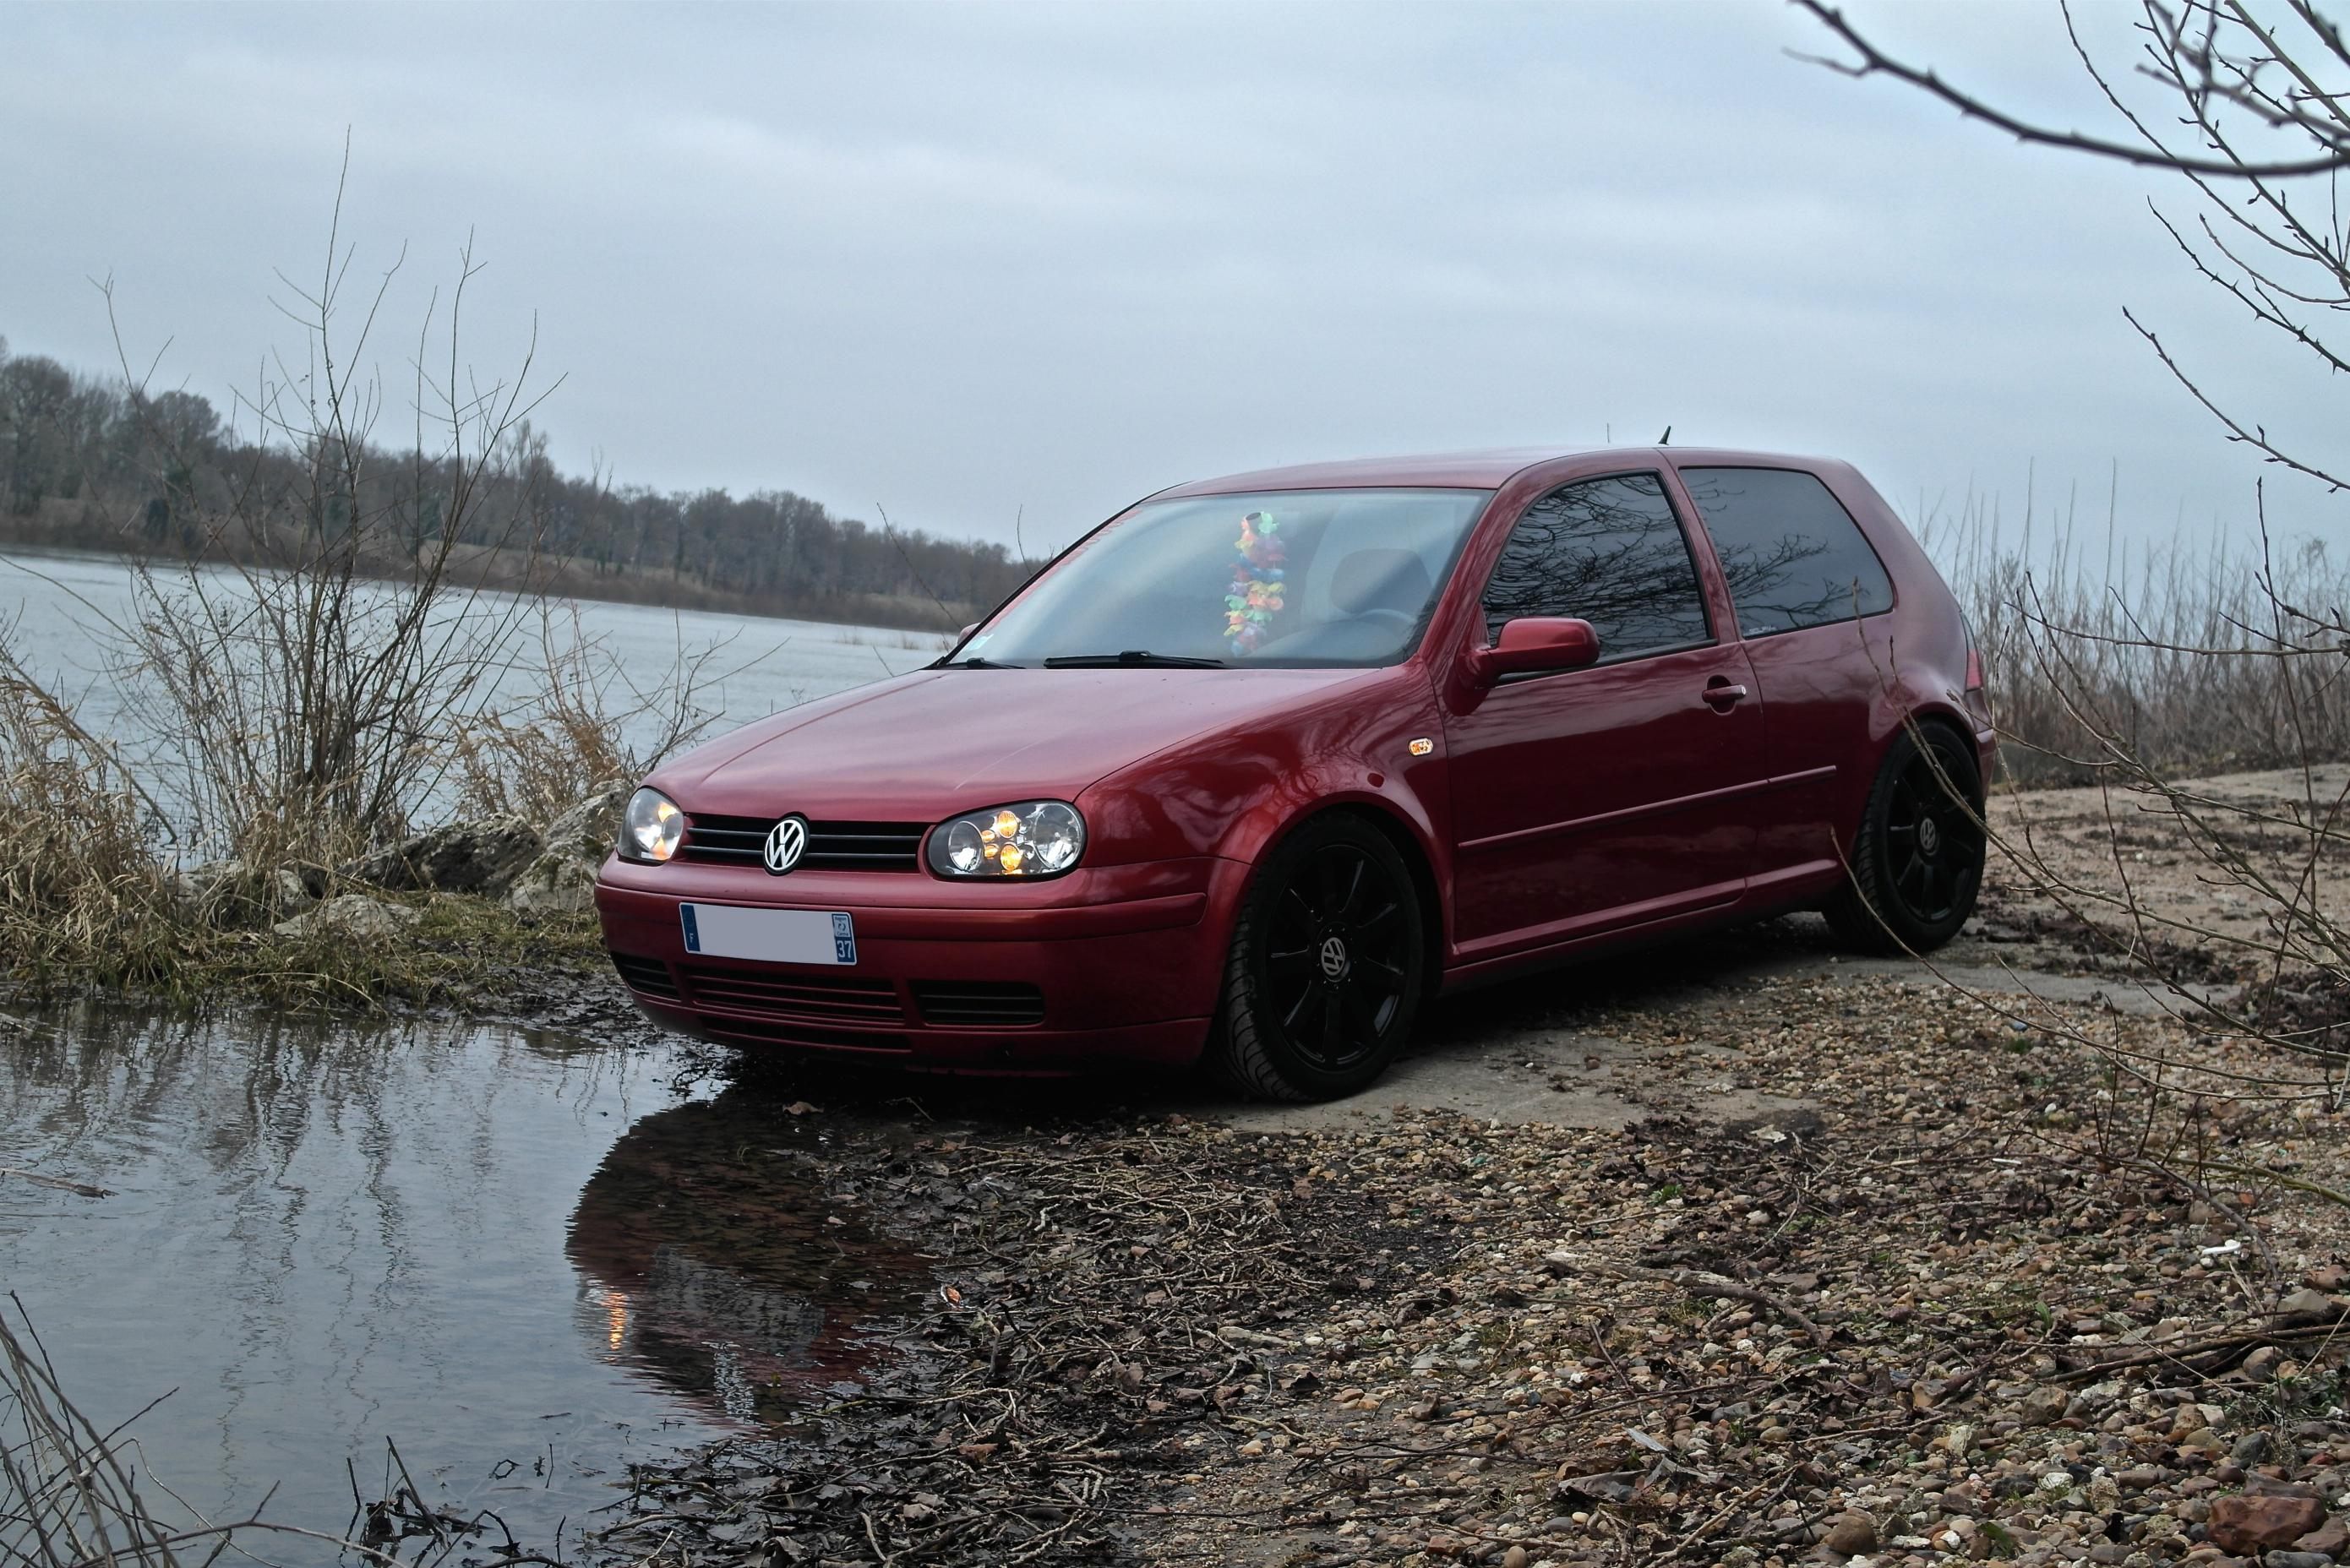 golf iv tdi 110 rouge canyon julie  u0026gt  gti trouv u00e9e  d page